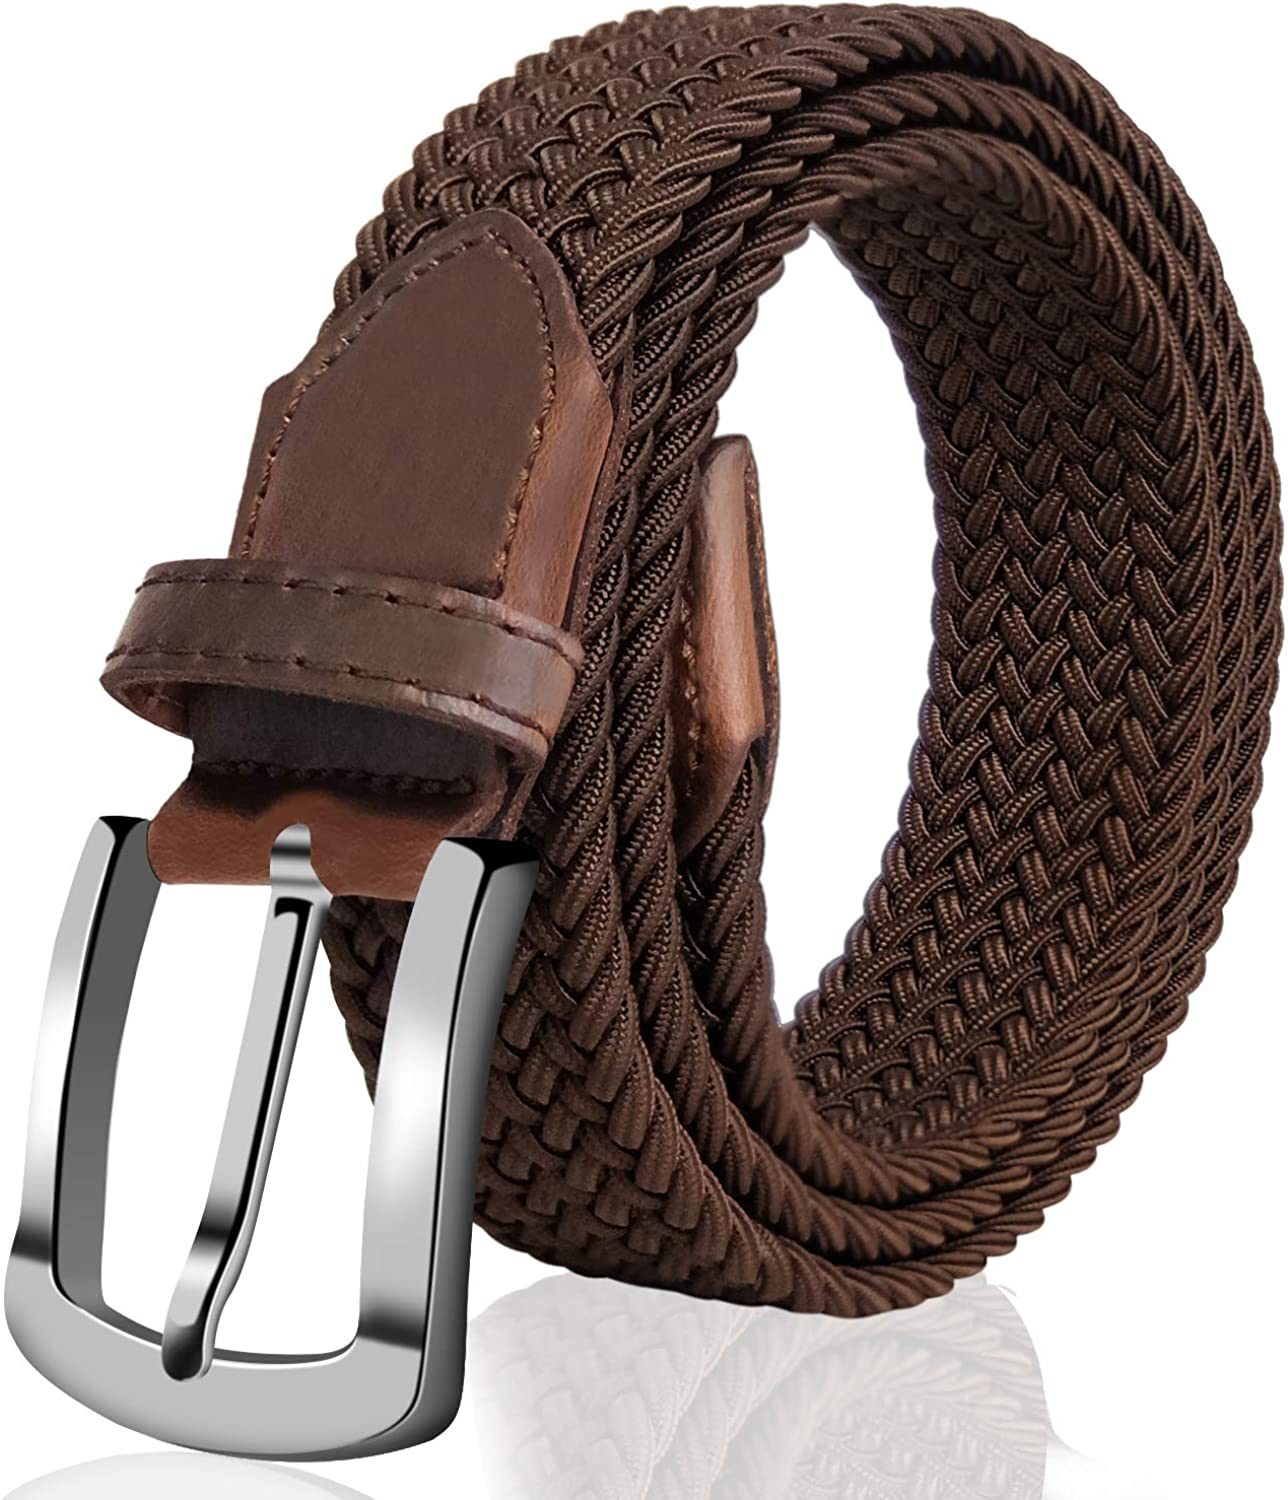 Women's Braided Elastic Fabric Woven Solid Color Stretch Belt with Leather Inlay